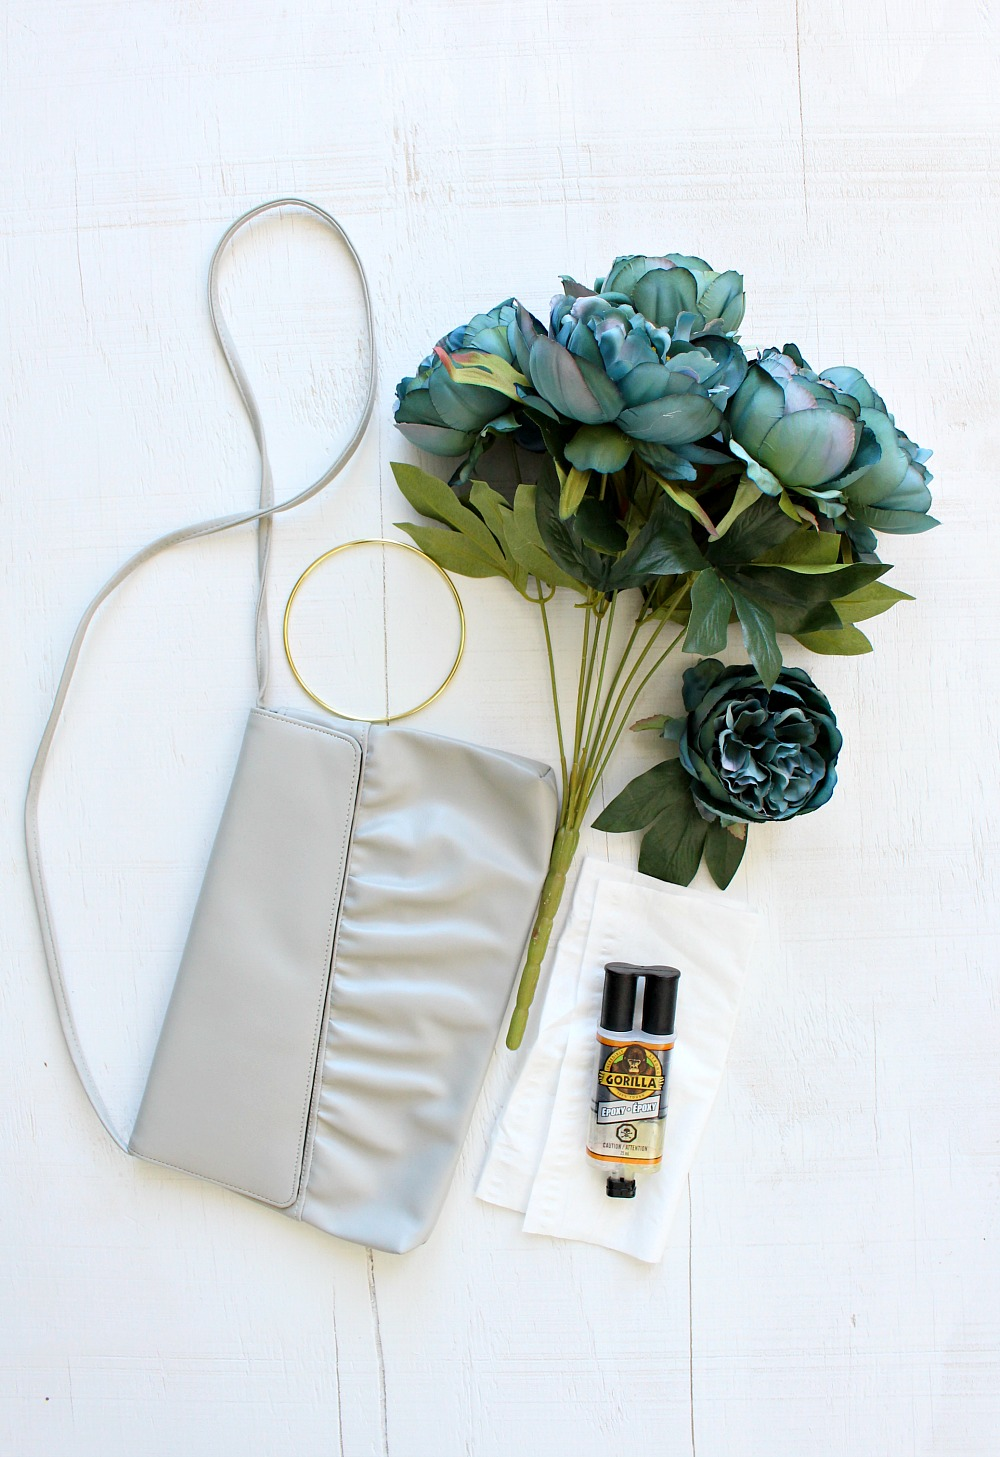 How to Make a DIY Faux Flower Purse